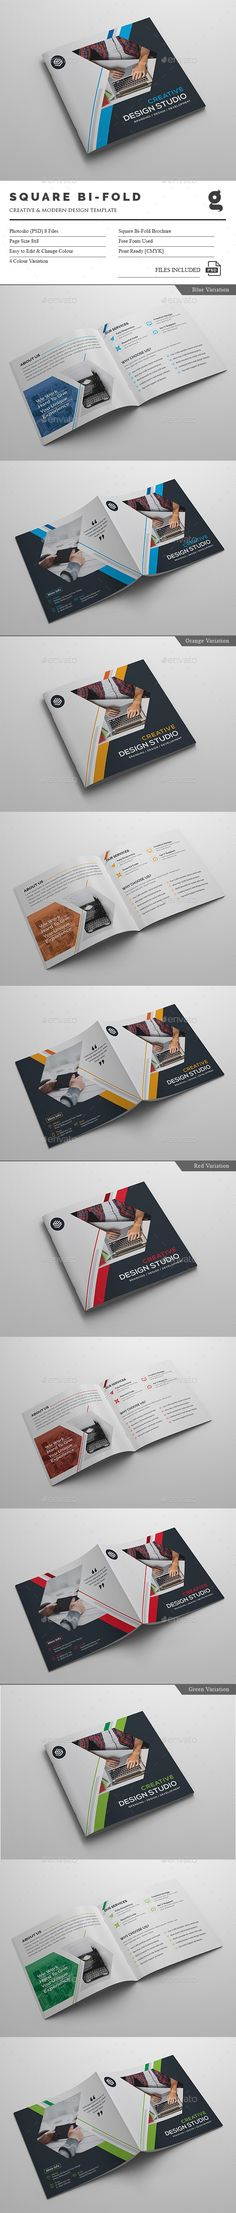 Corporate Square Bi-Fold - Corporate Brochure Template PSD. Download here: http://graphicriver.net/item/corporate-square-bifold/16428896?ref=yinkira